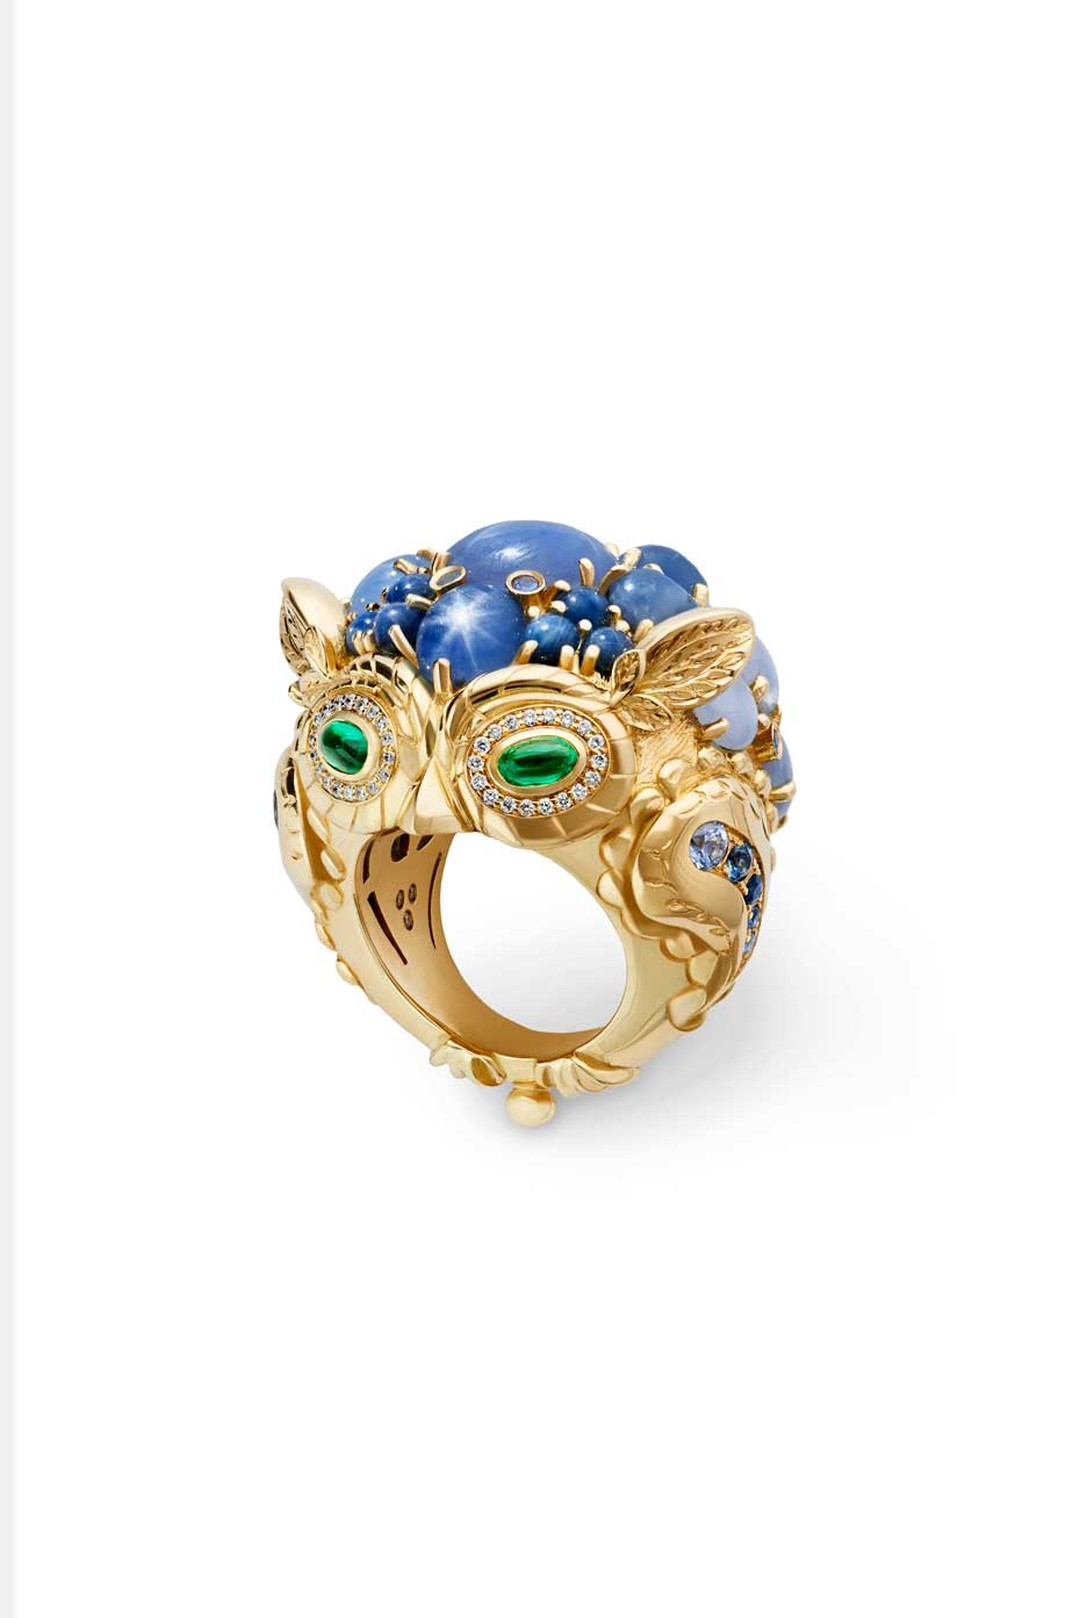 Temple St.Clair Great Horned Owl ring in yellow gold, set with star sapphires, Ceylon sapphires, emeralds and diamonds.